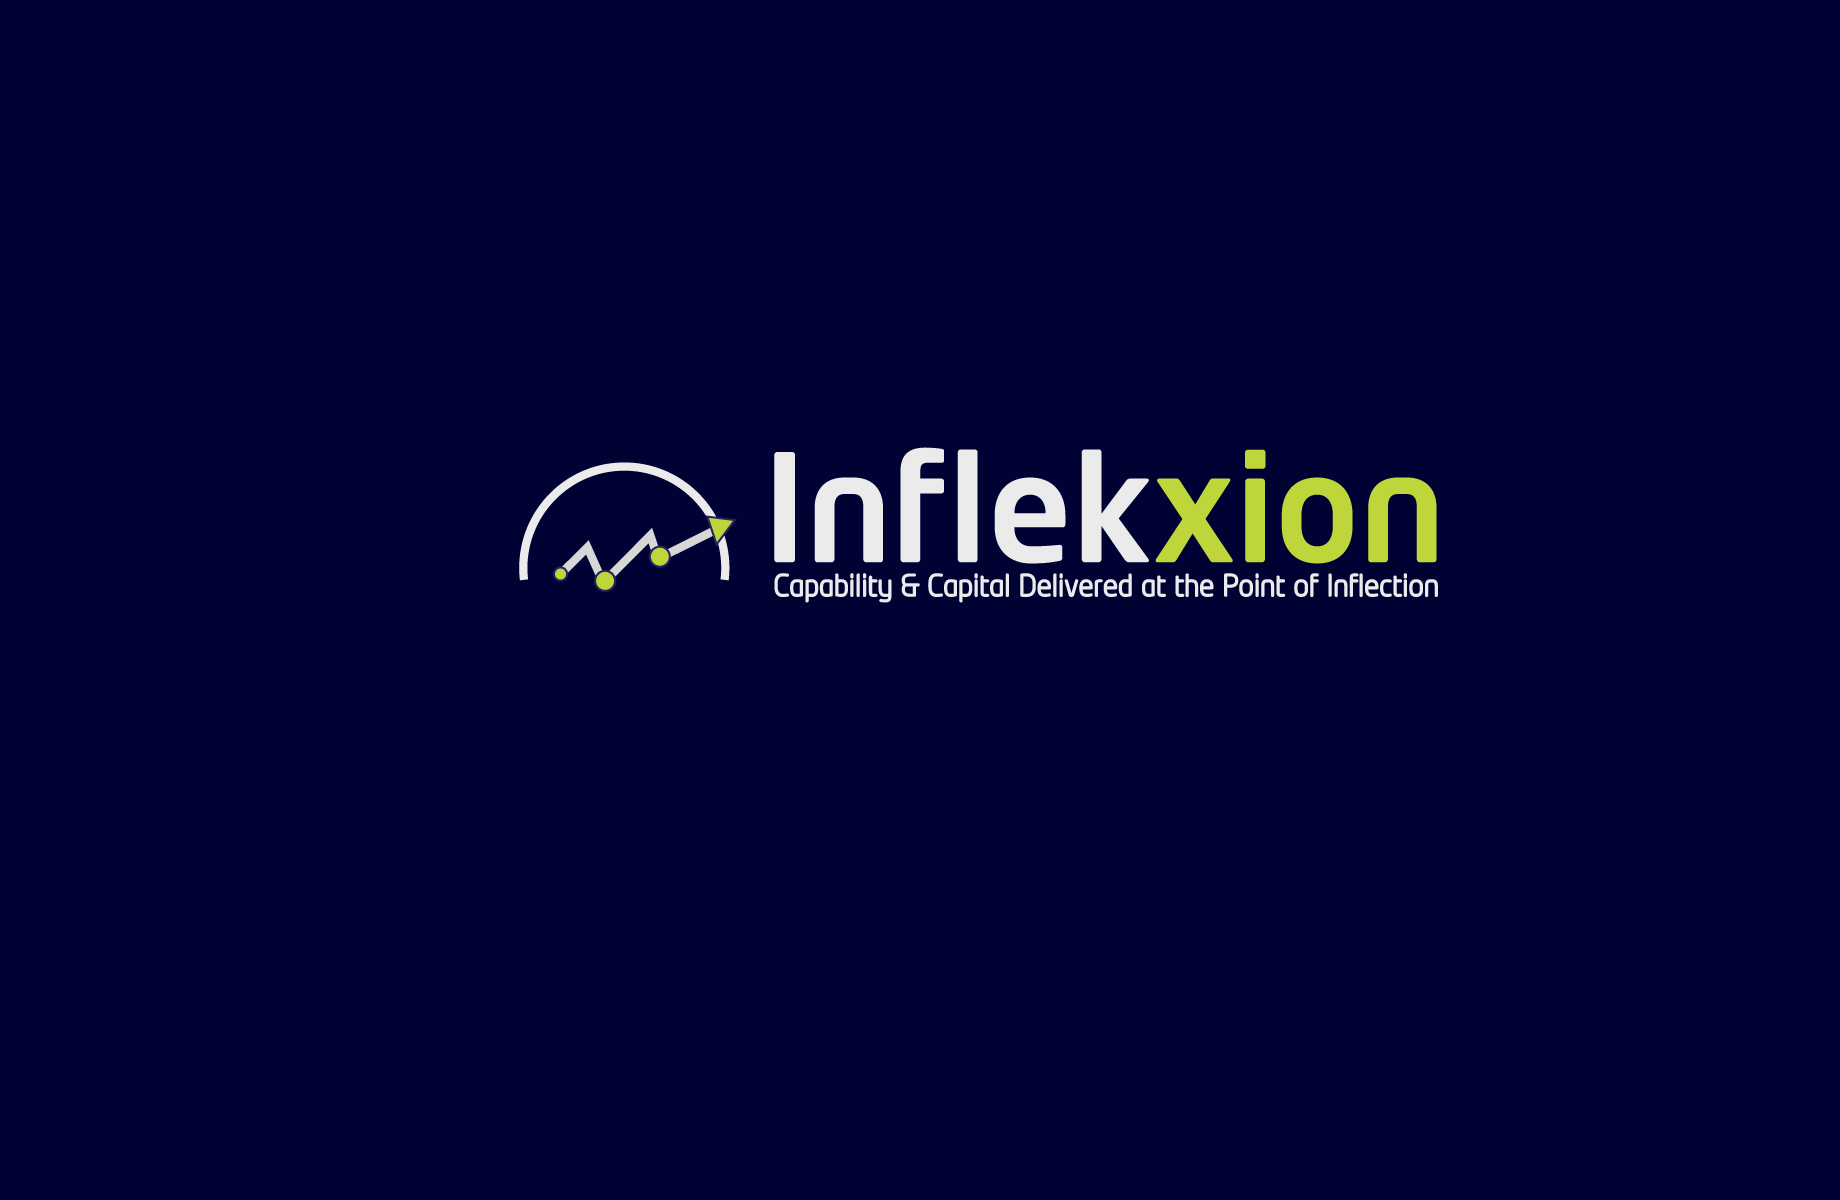 Logo Design by Jan Chua - Entry No. 77 in the Logo Design Contest Professional Logo Design for Inflekxion.